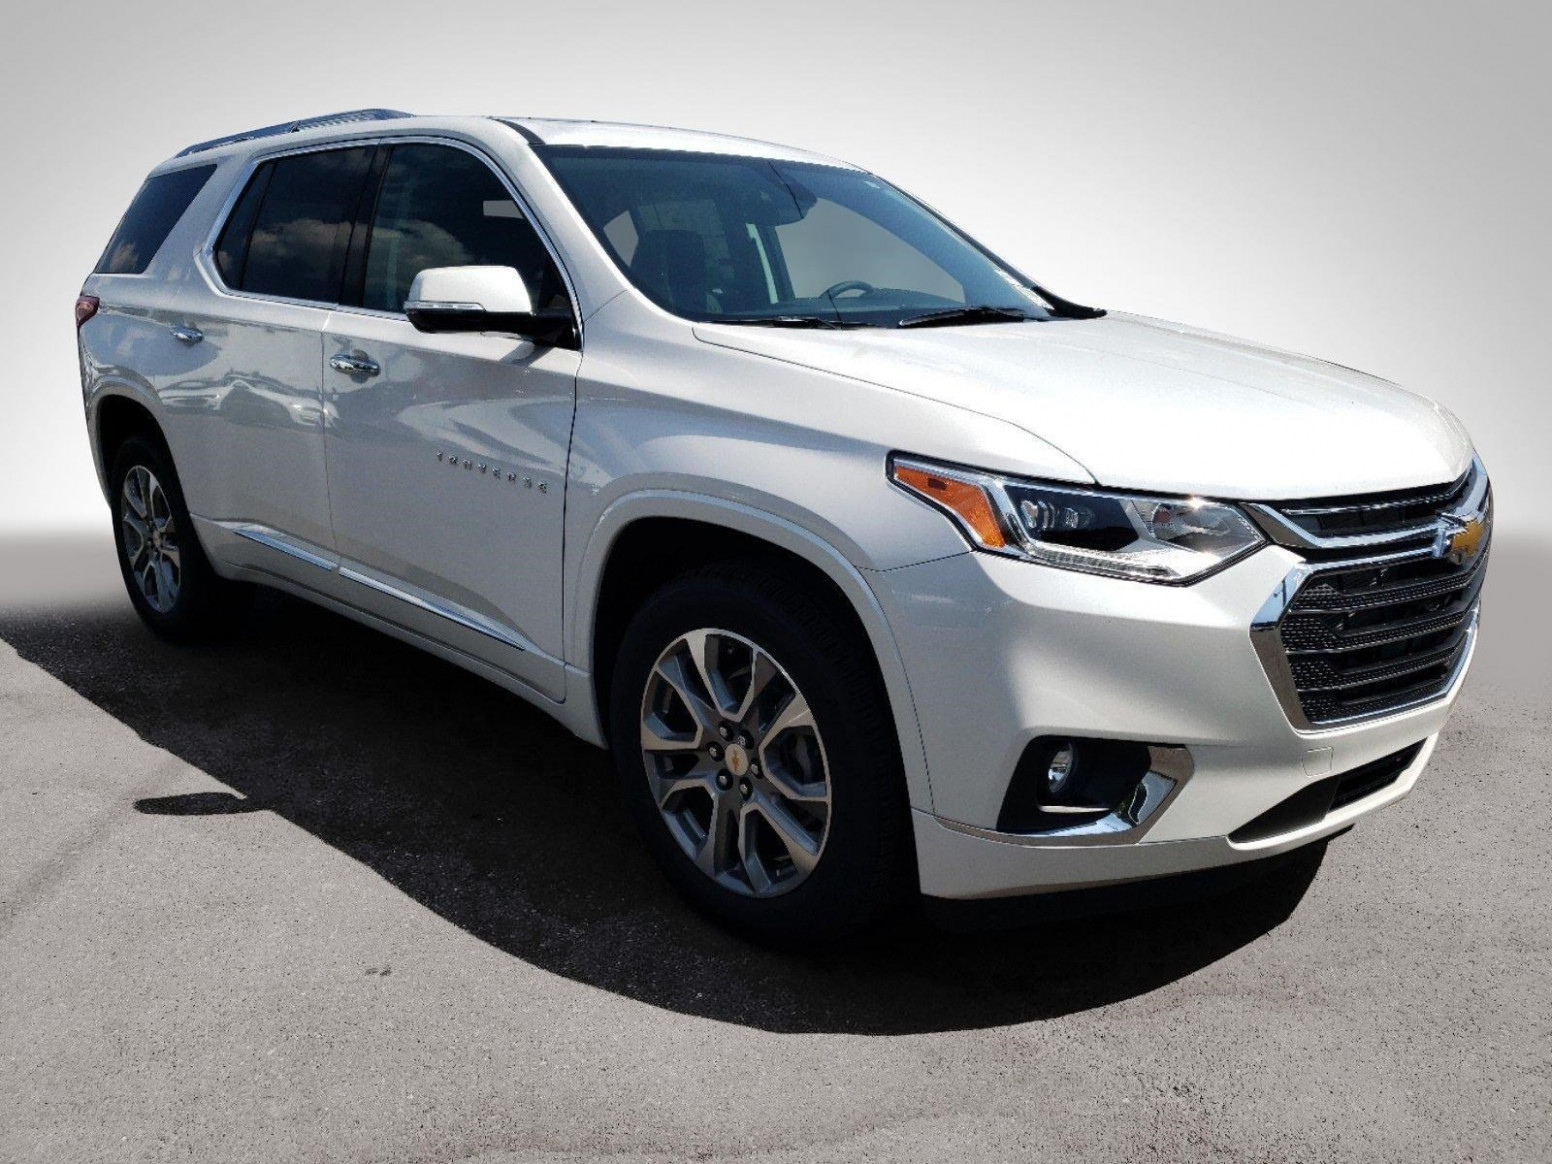 New 7 Chevrolet Traverse Premier With Navigation - 2020 chevrolet traverse premier